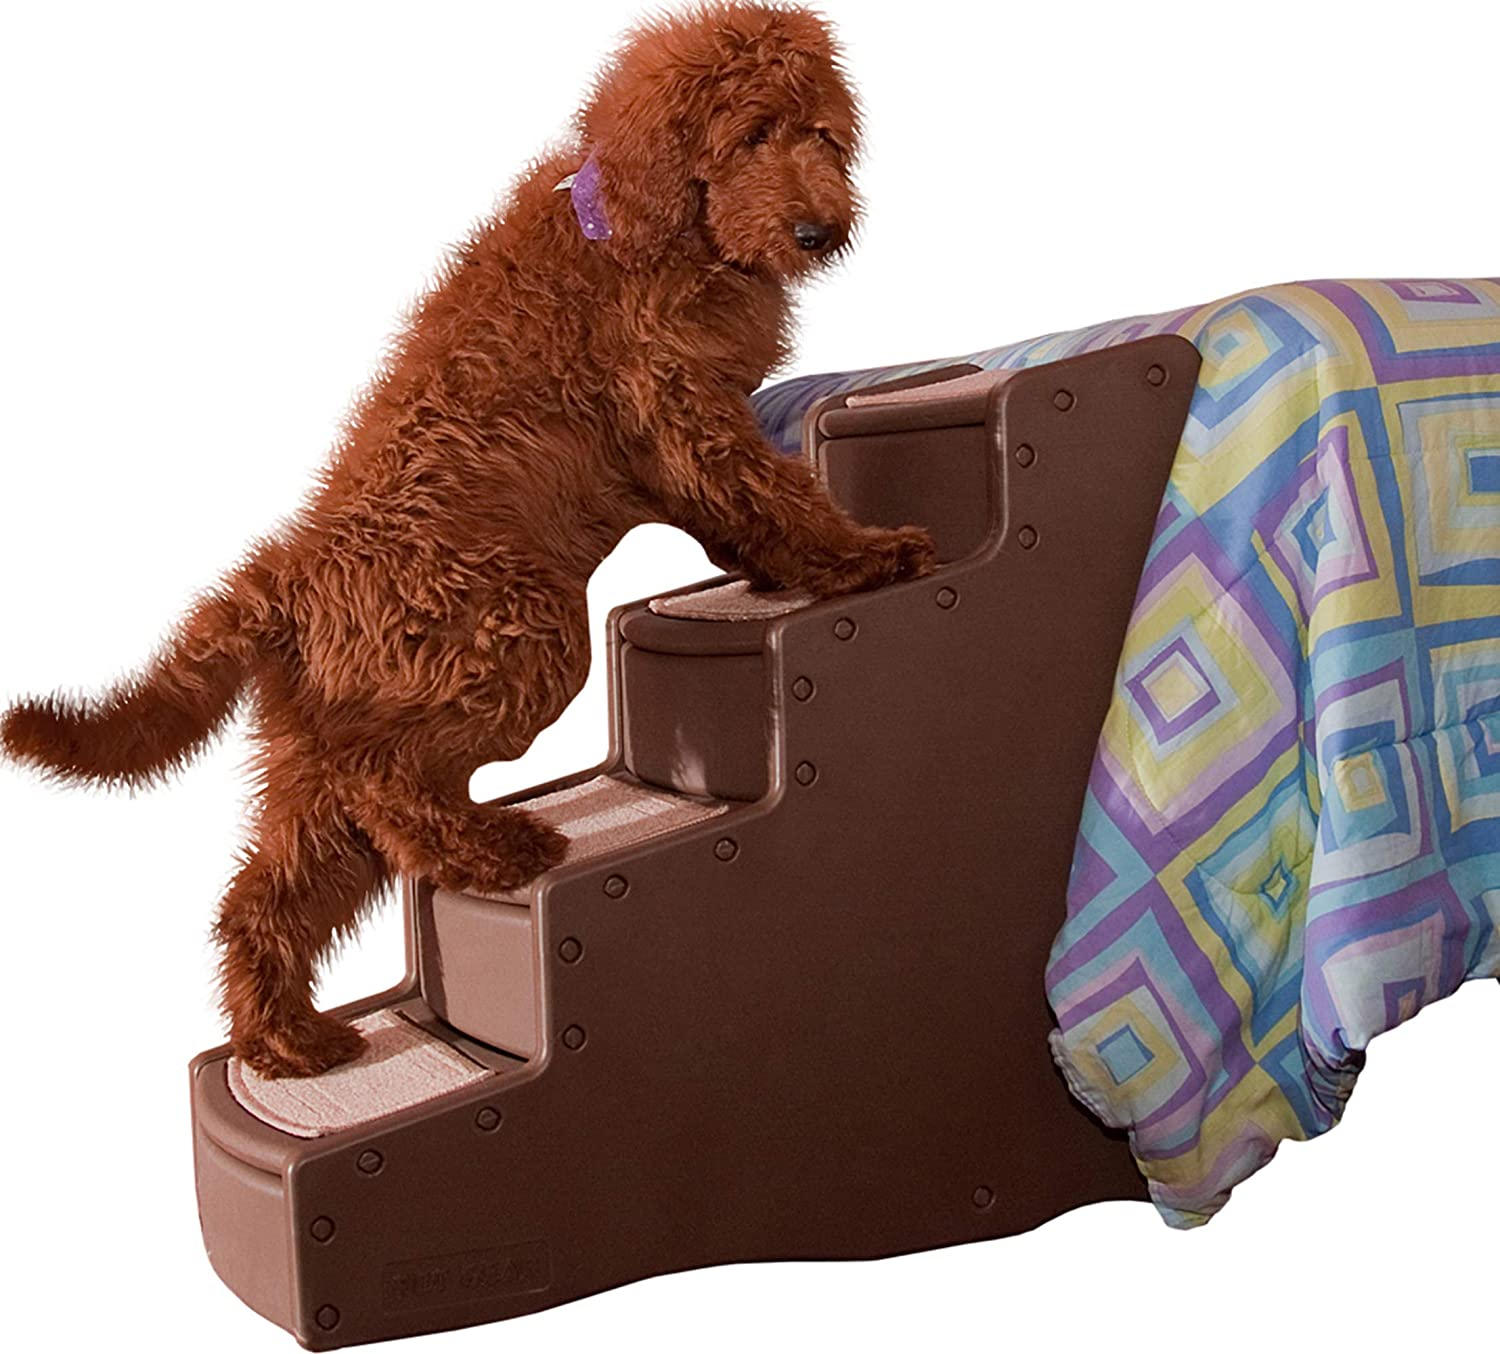 Pet Gear Easy Step IV Pet Stairs, 4-step/for cats and dogs up to 150-pounds, Chocolate : Pet Supplies